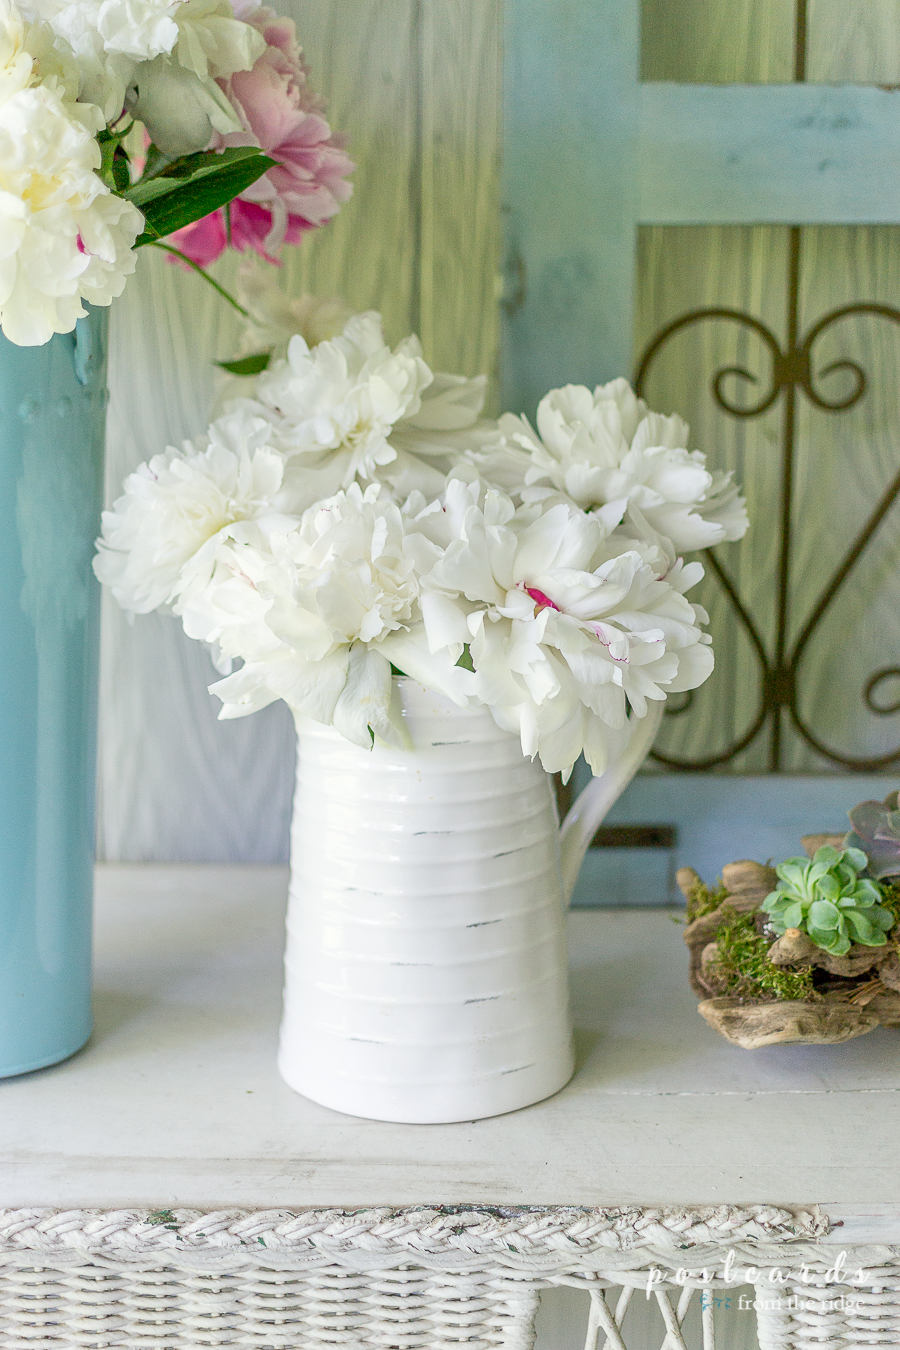 5 Simple Summer Decorating Ideas - Postcards from the Ridge